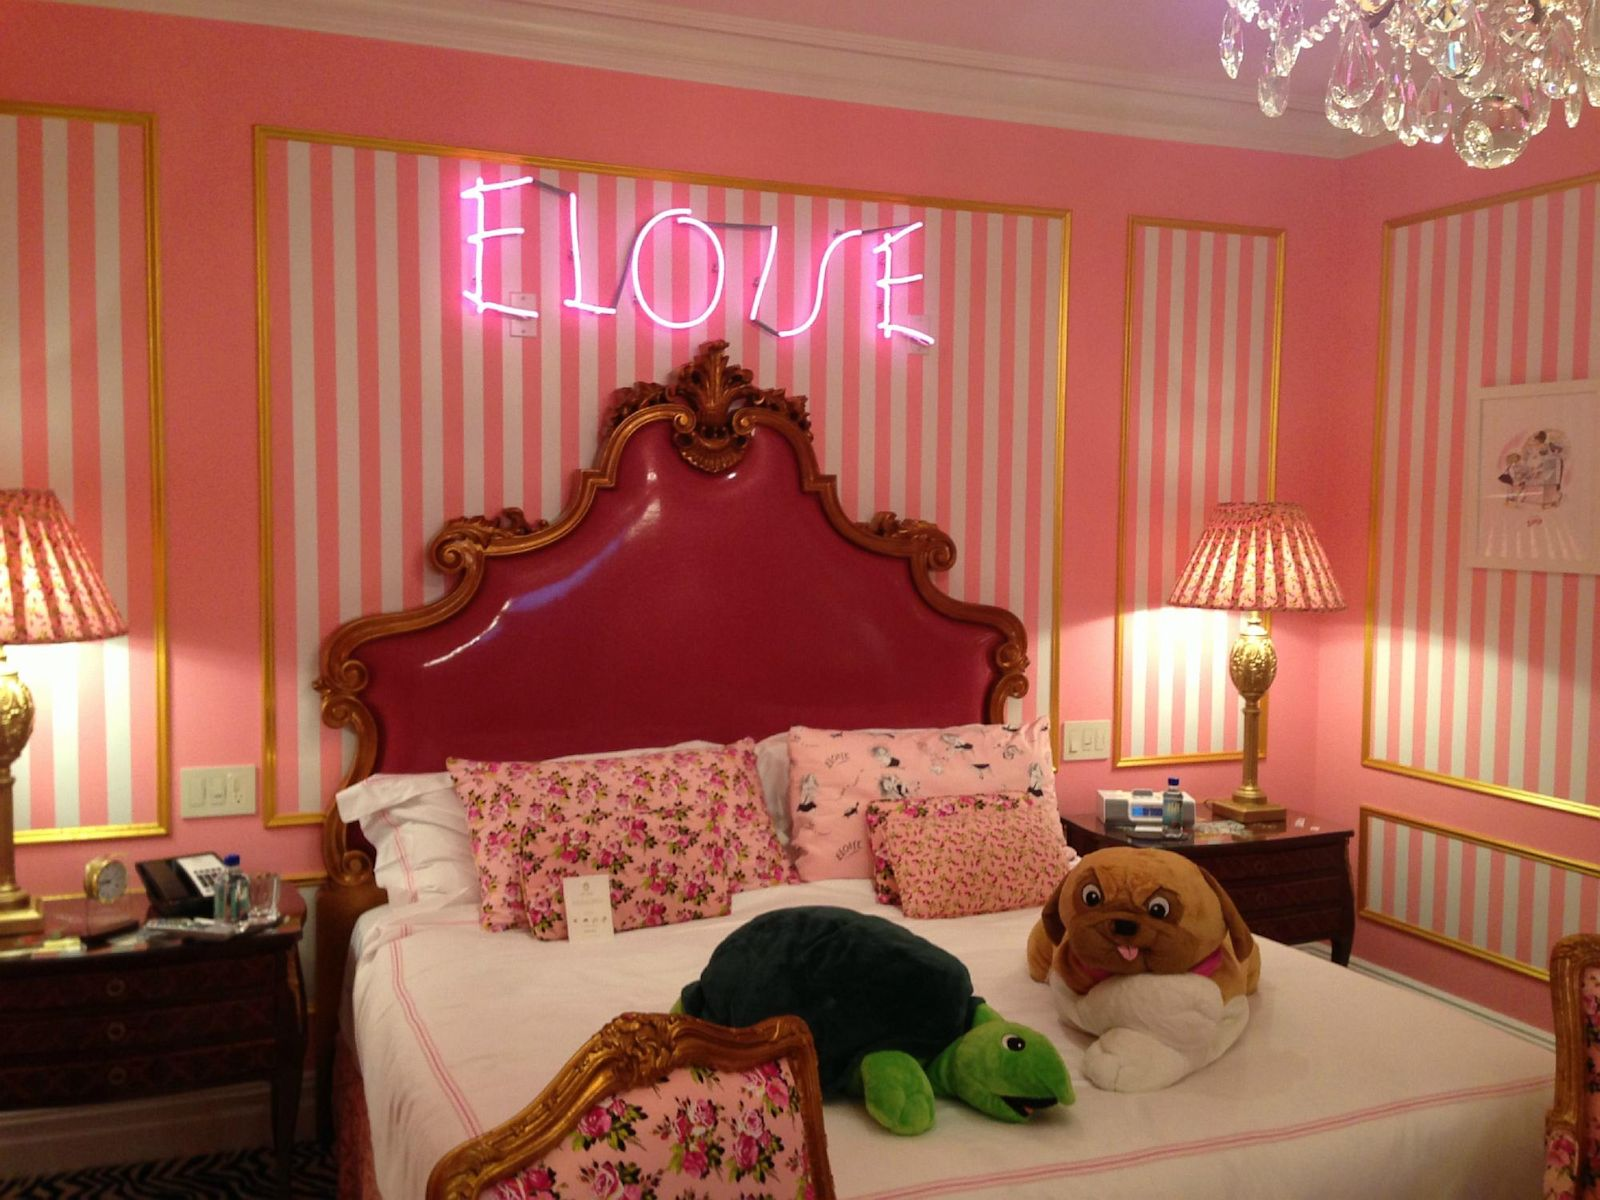 Eloise Suite At The Plaza Hotel New York